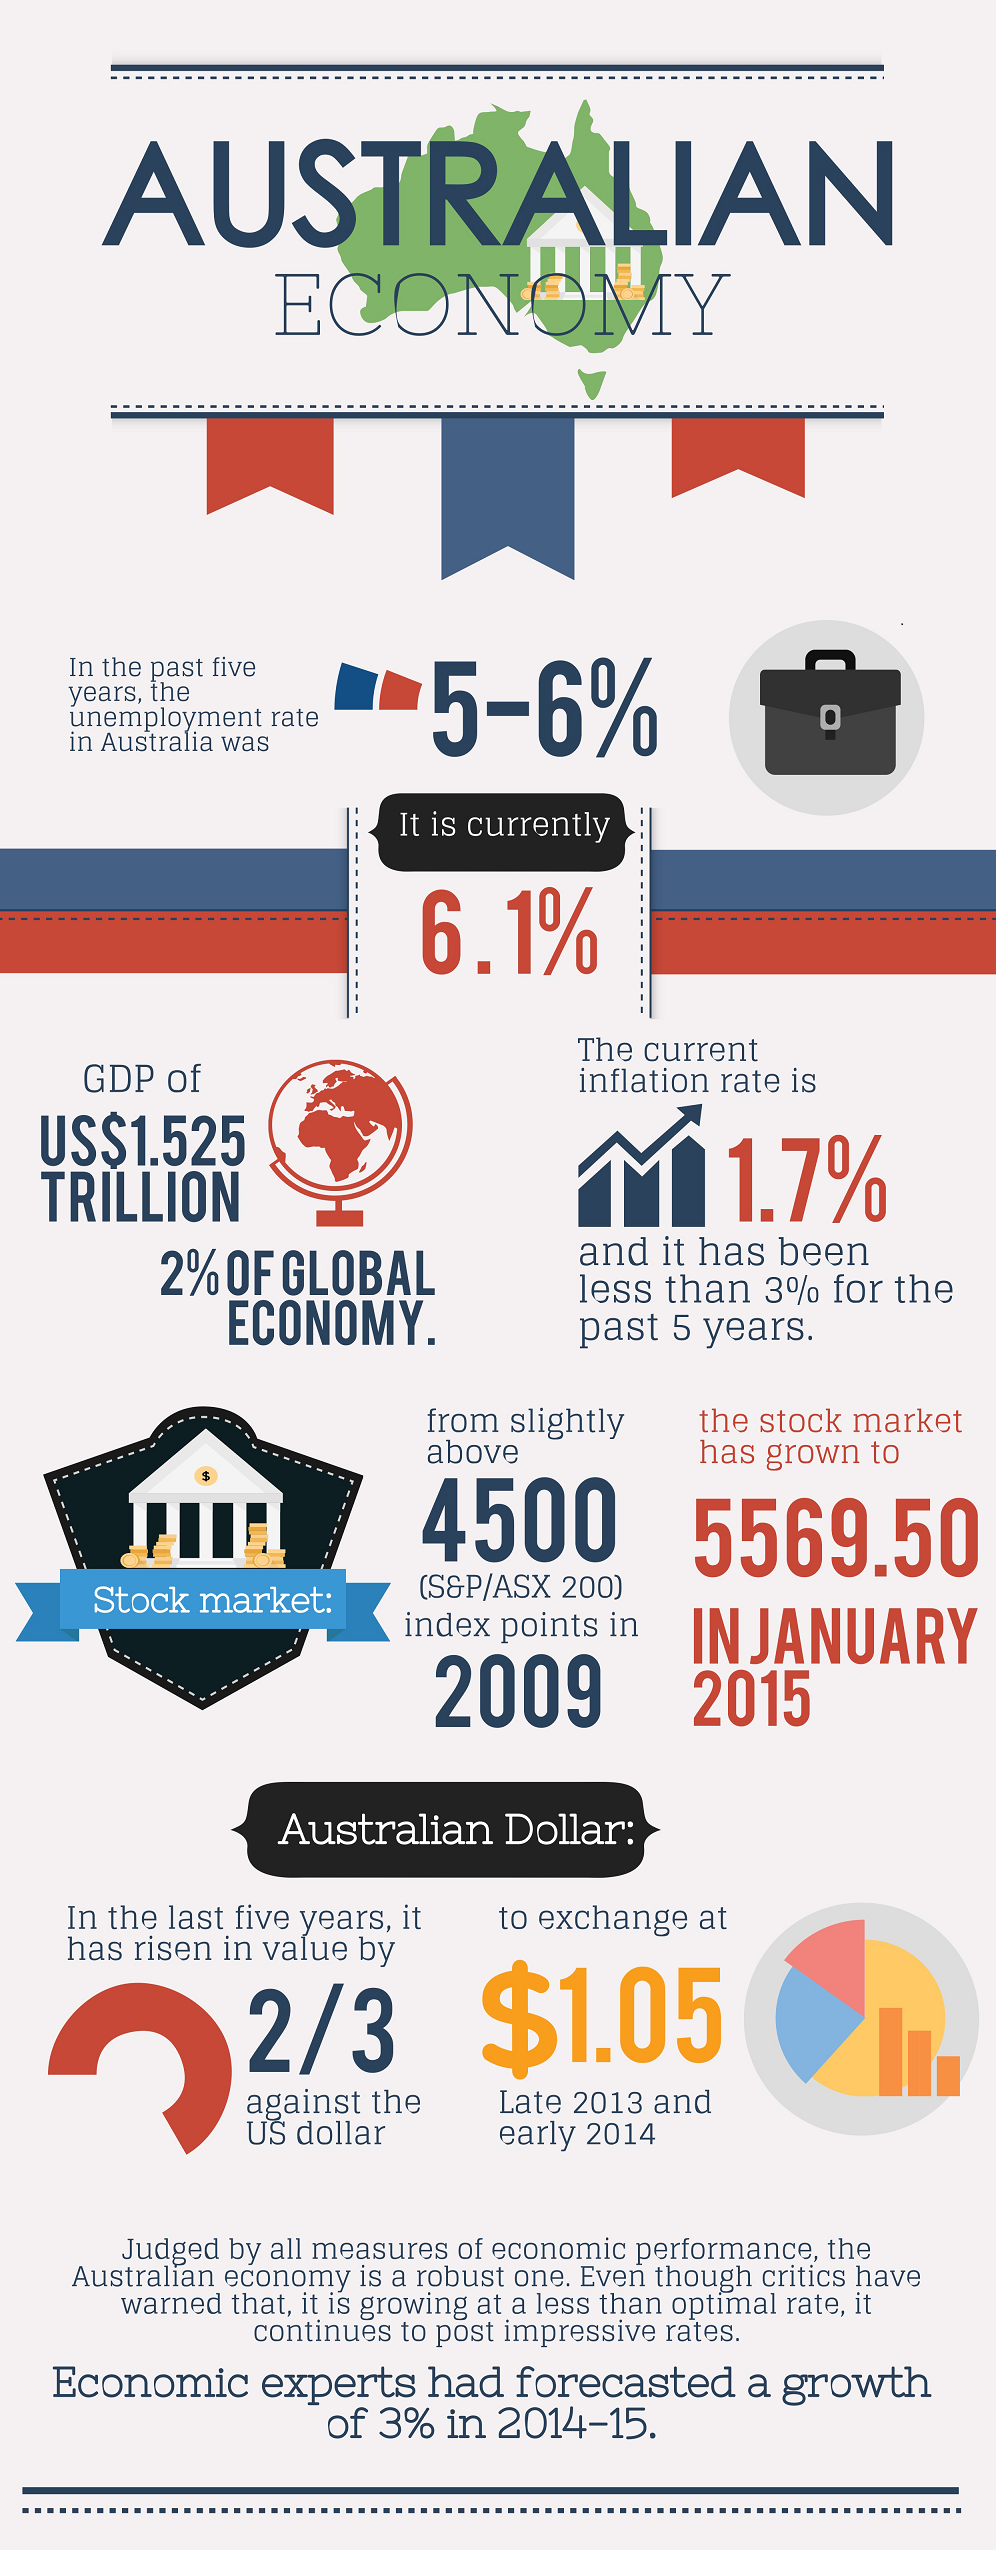 What is the impact on Australia's economy of importing goods?